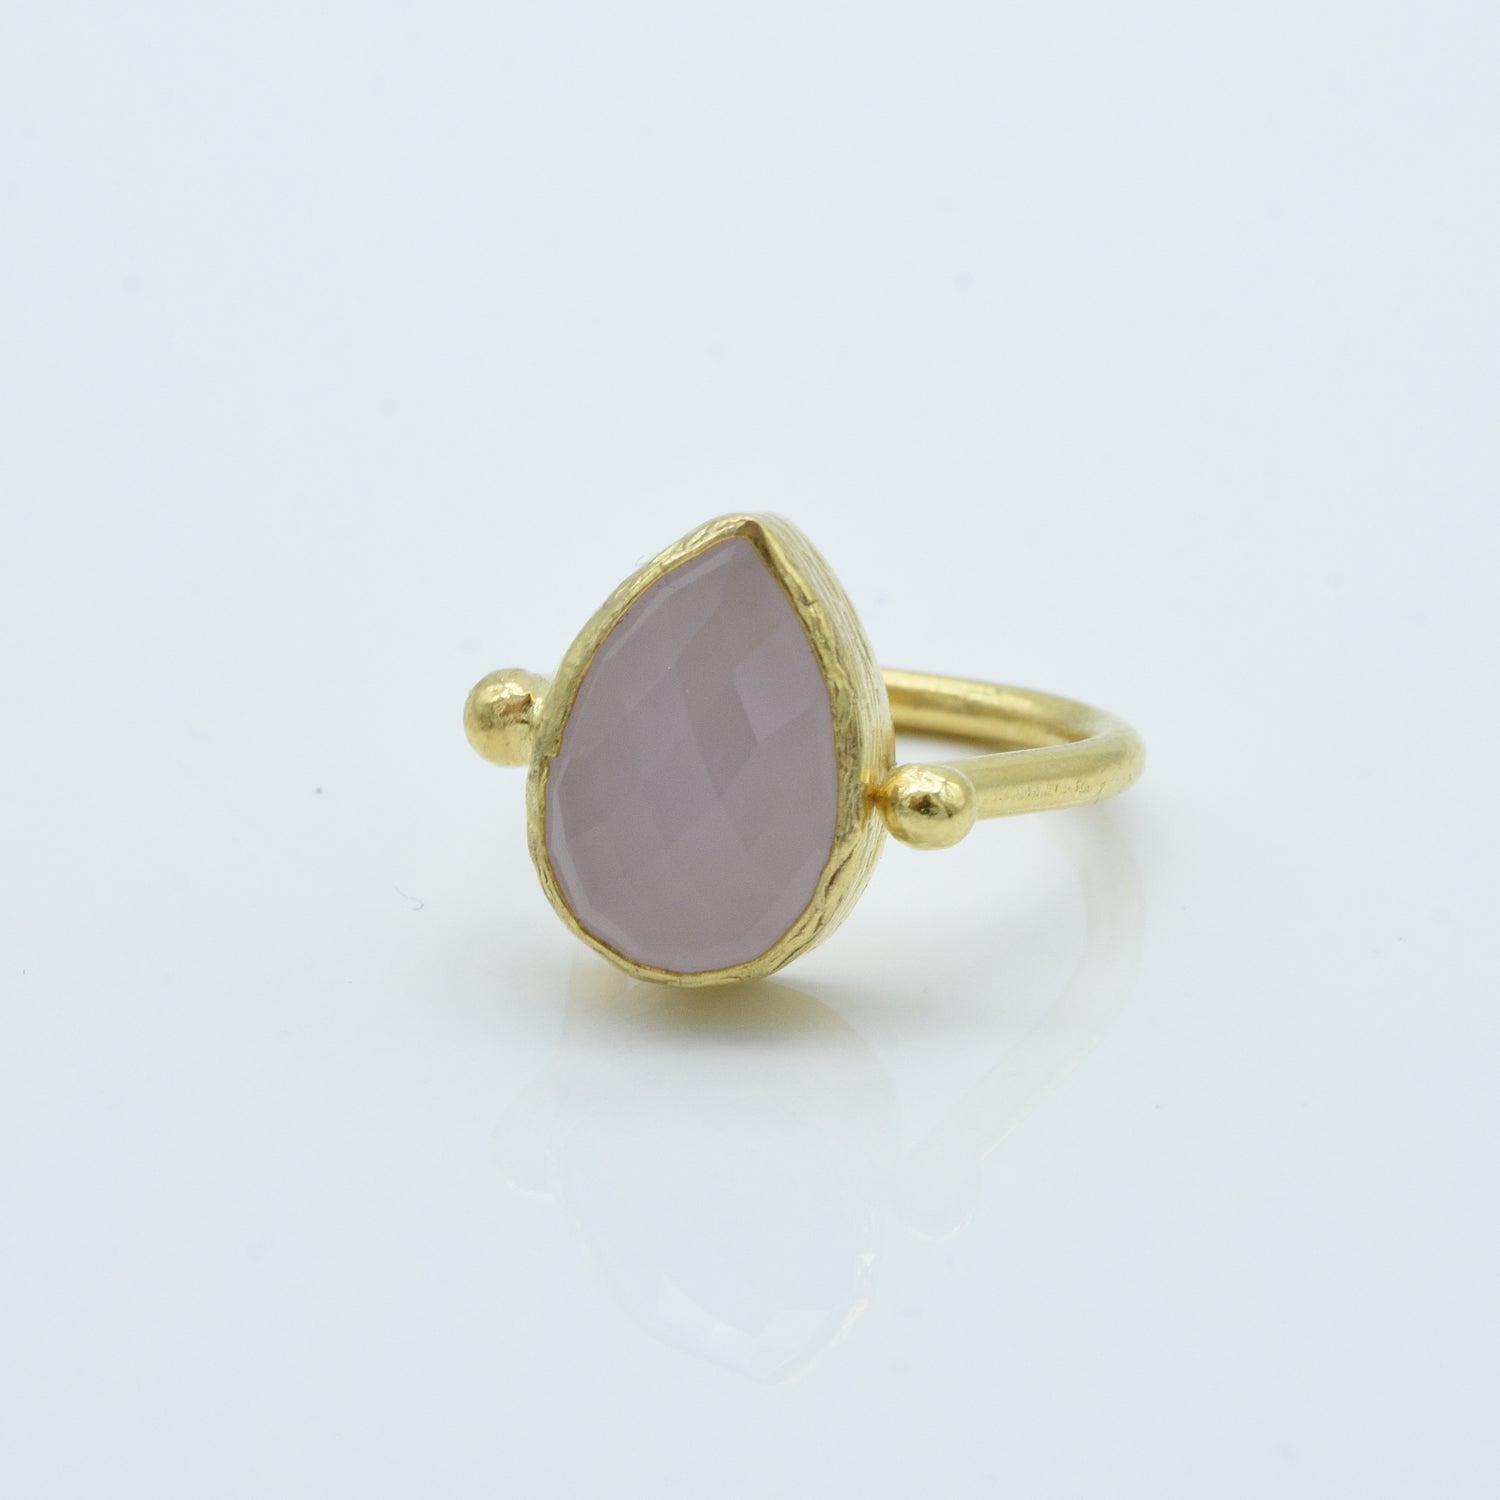 Aylas Rose Quartz adjustable ring - 21ct Gold plated brass - Handmade in Ottoman Style by Artisan